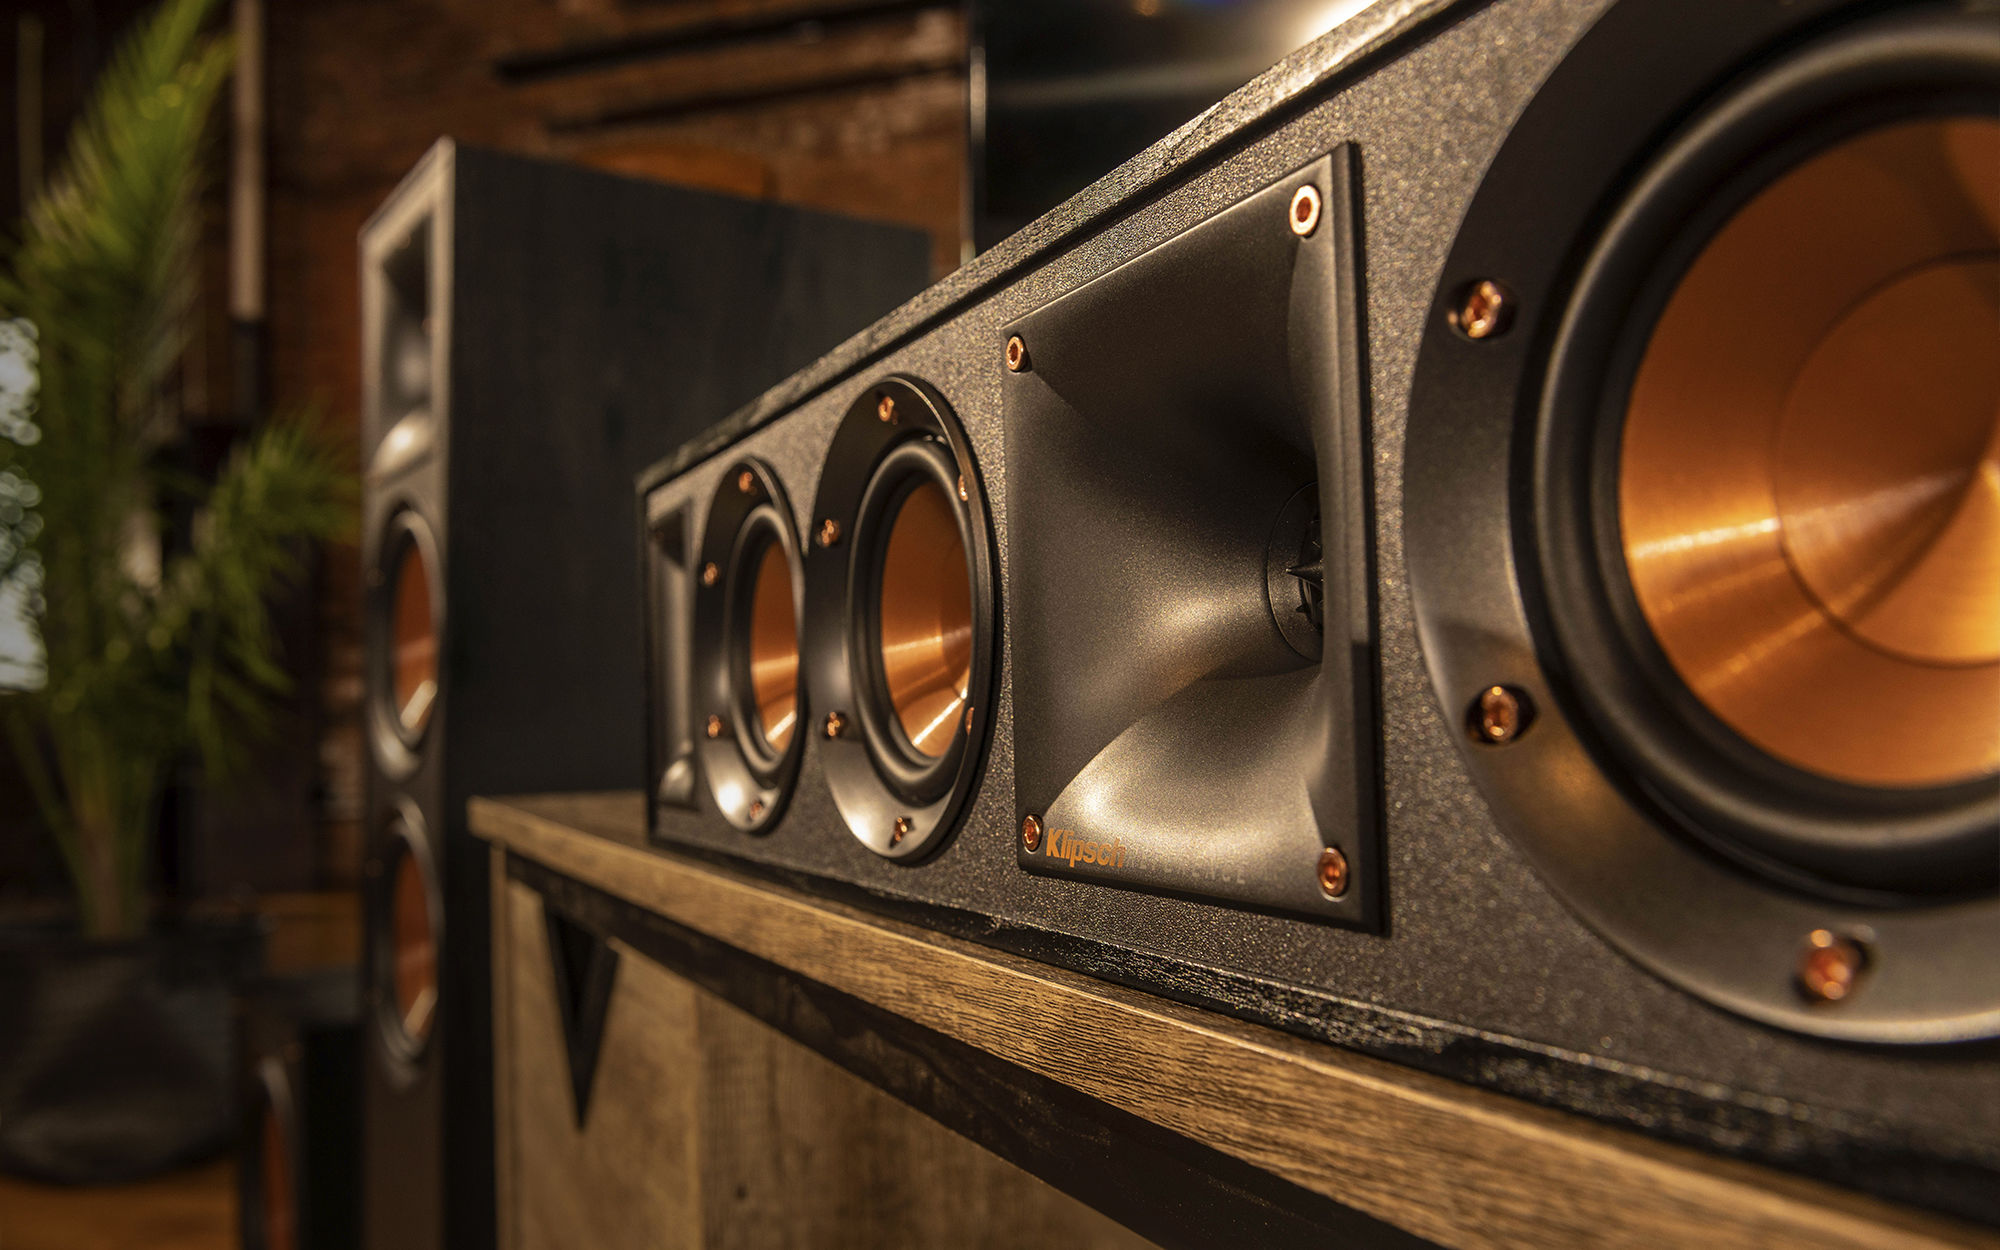 Klipsch R-34C center speaker up close